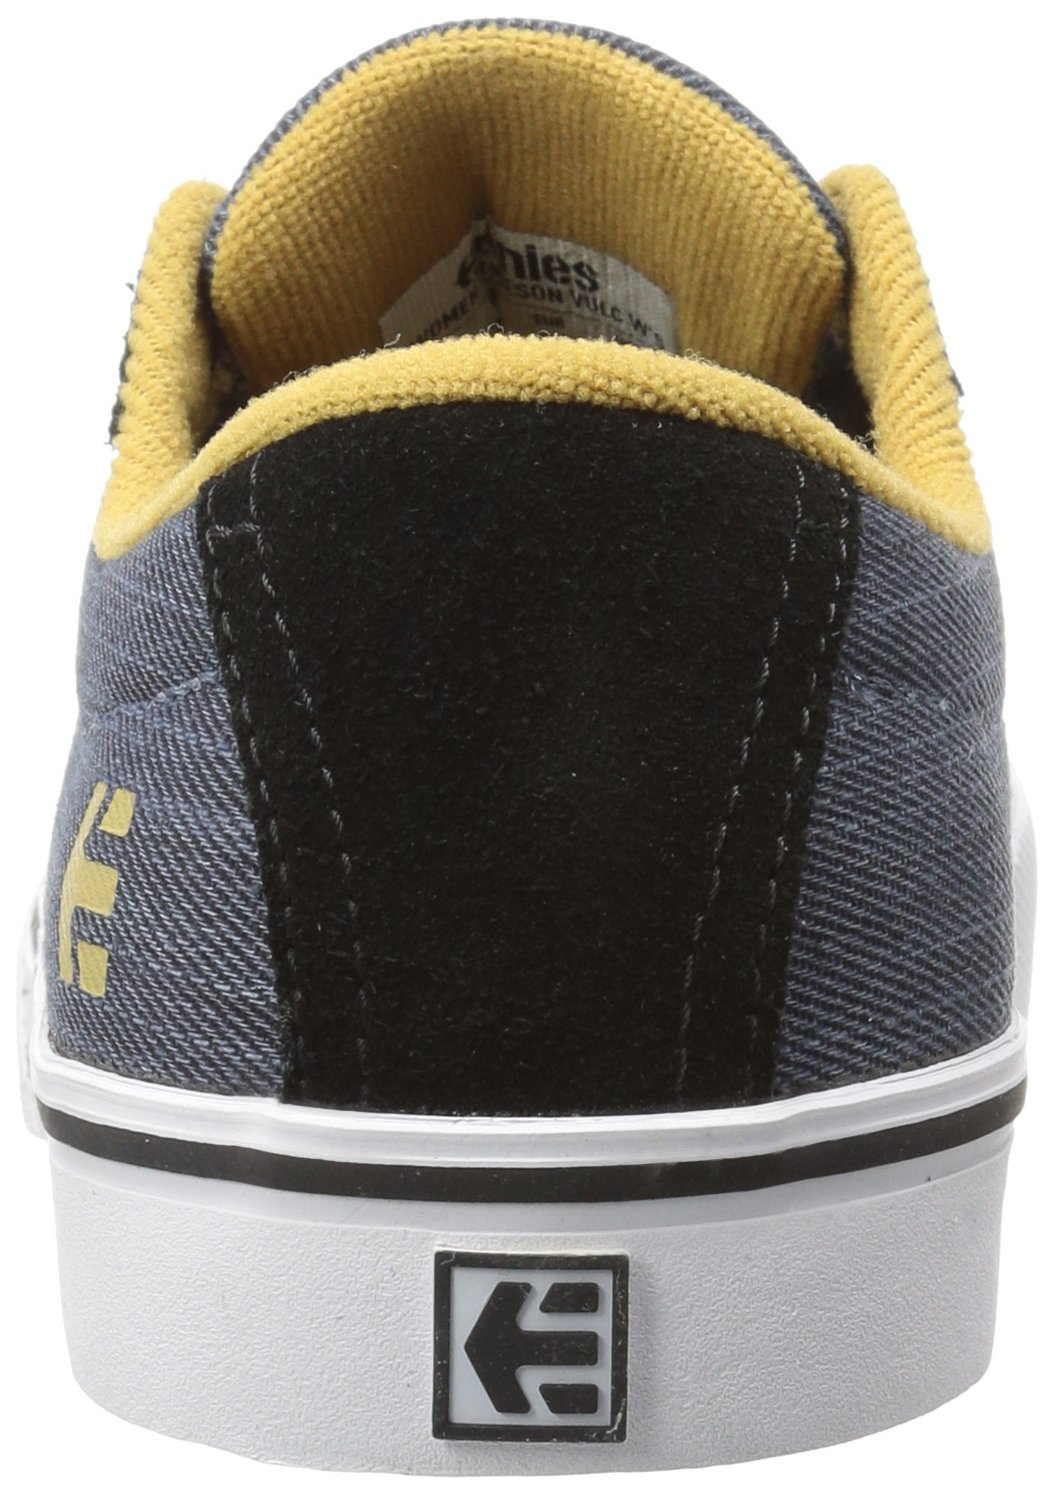 Etnies Women's Jameson Vulc Skate Shoe B01N5SH2IM 8 B(M) US|Black Denim